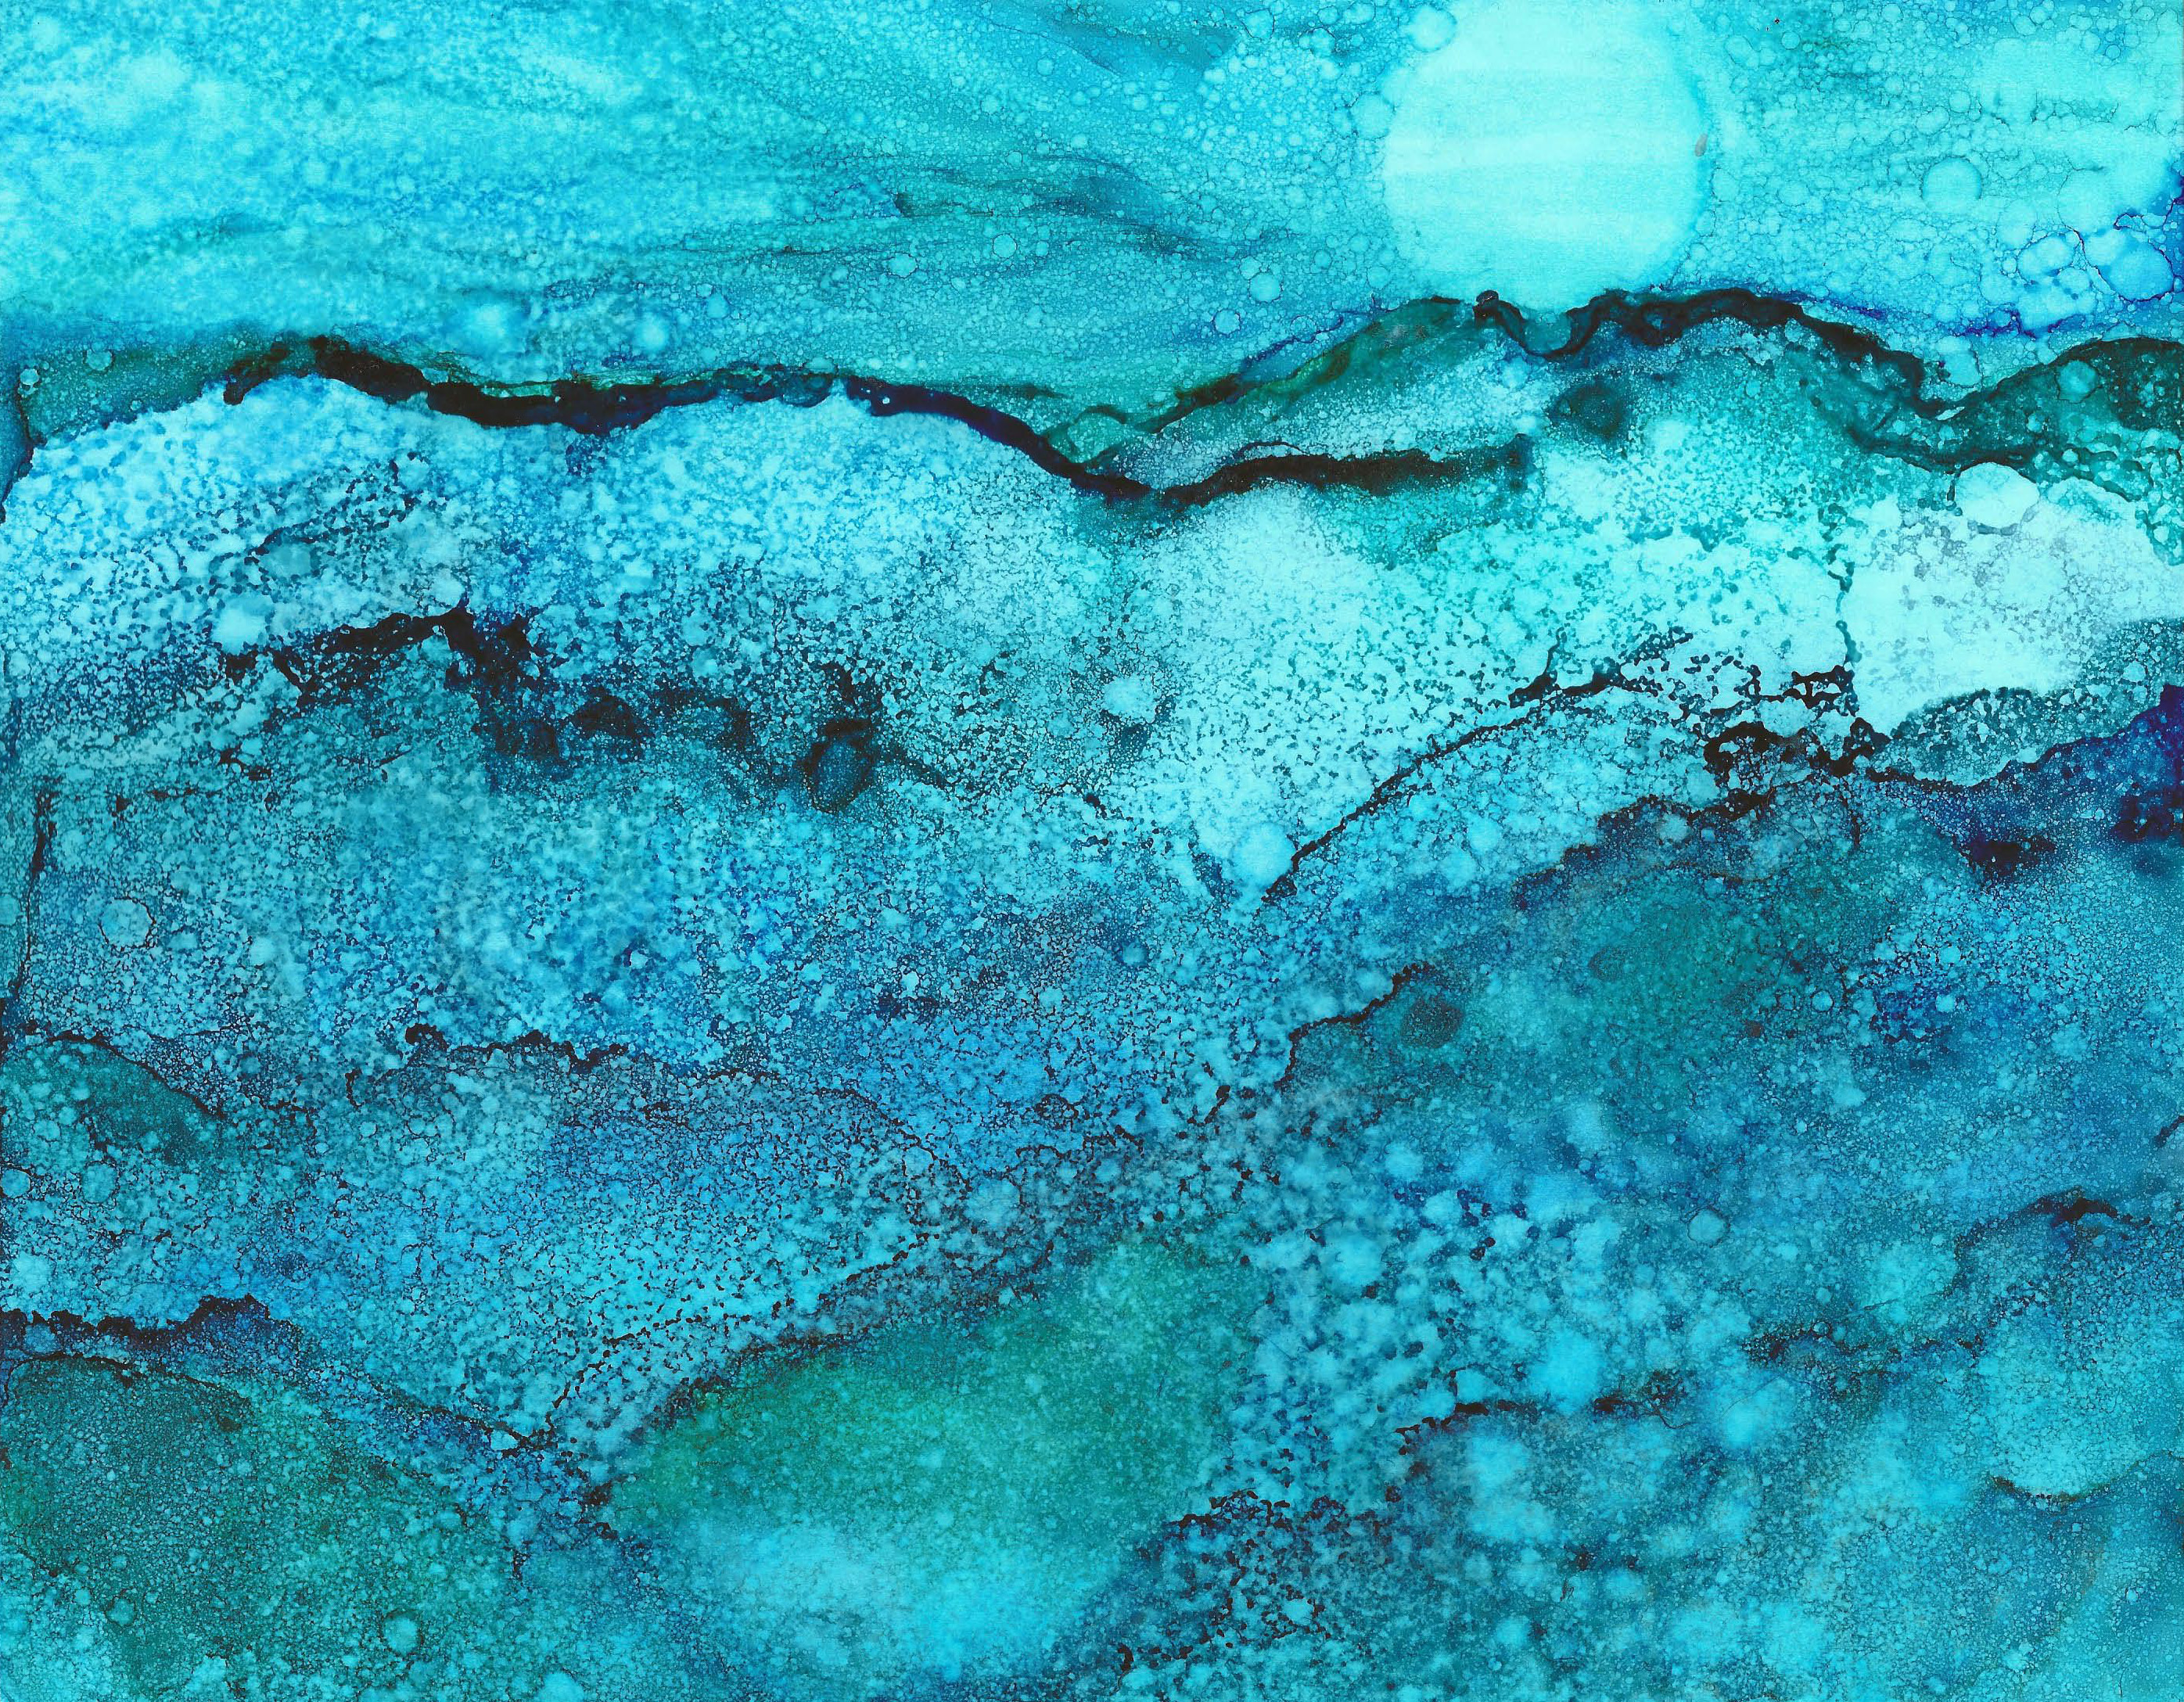 Moonlit Snow - Alcohol Ink 11 X 14 - $175